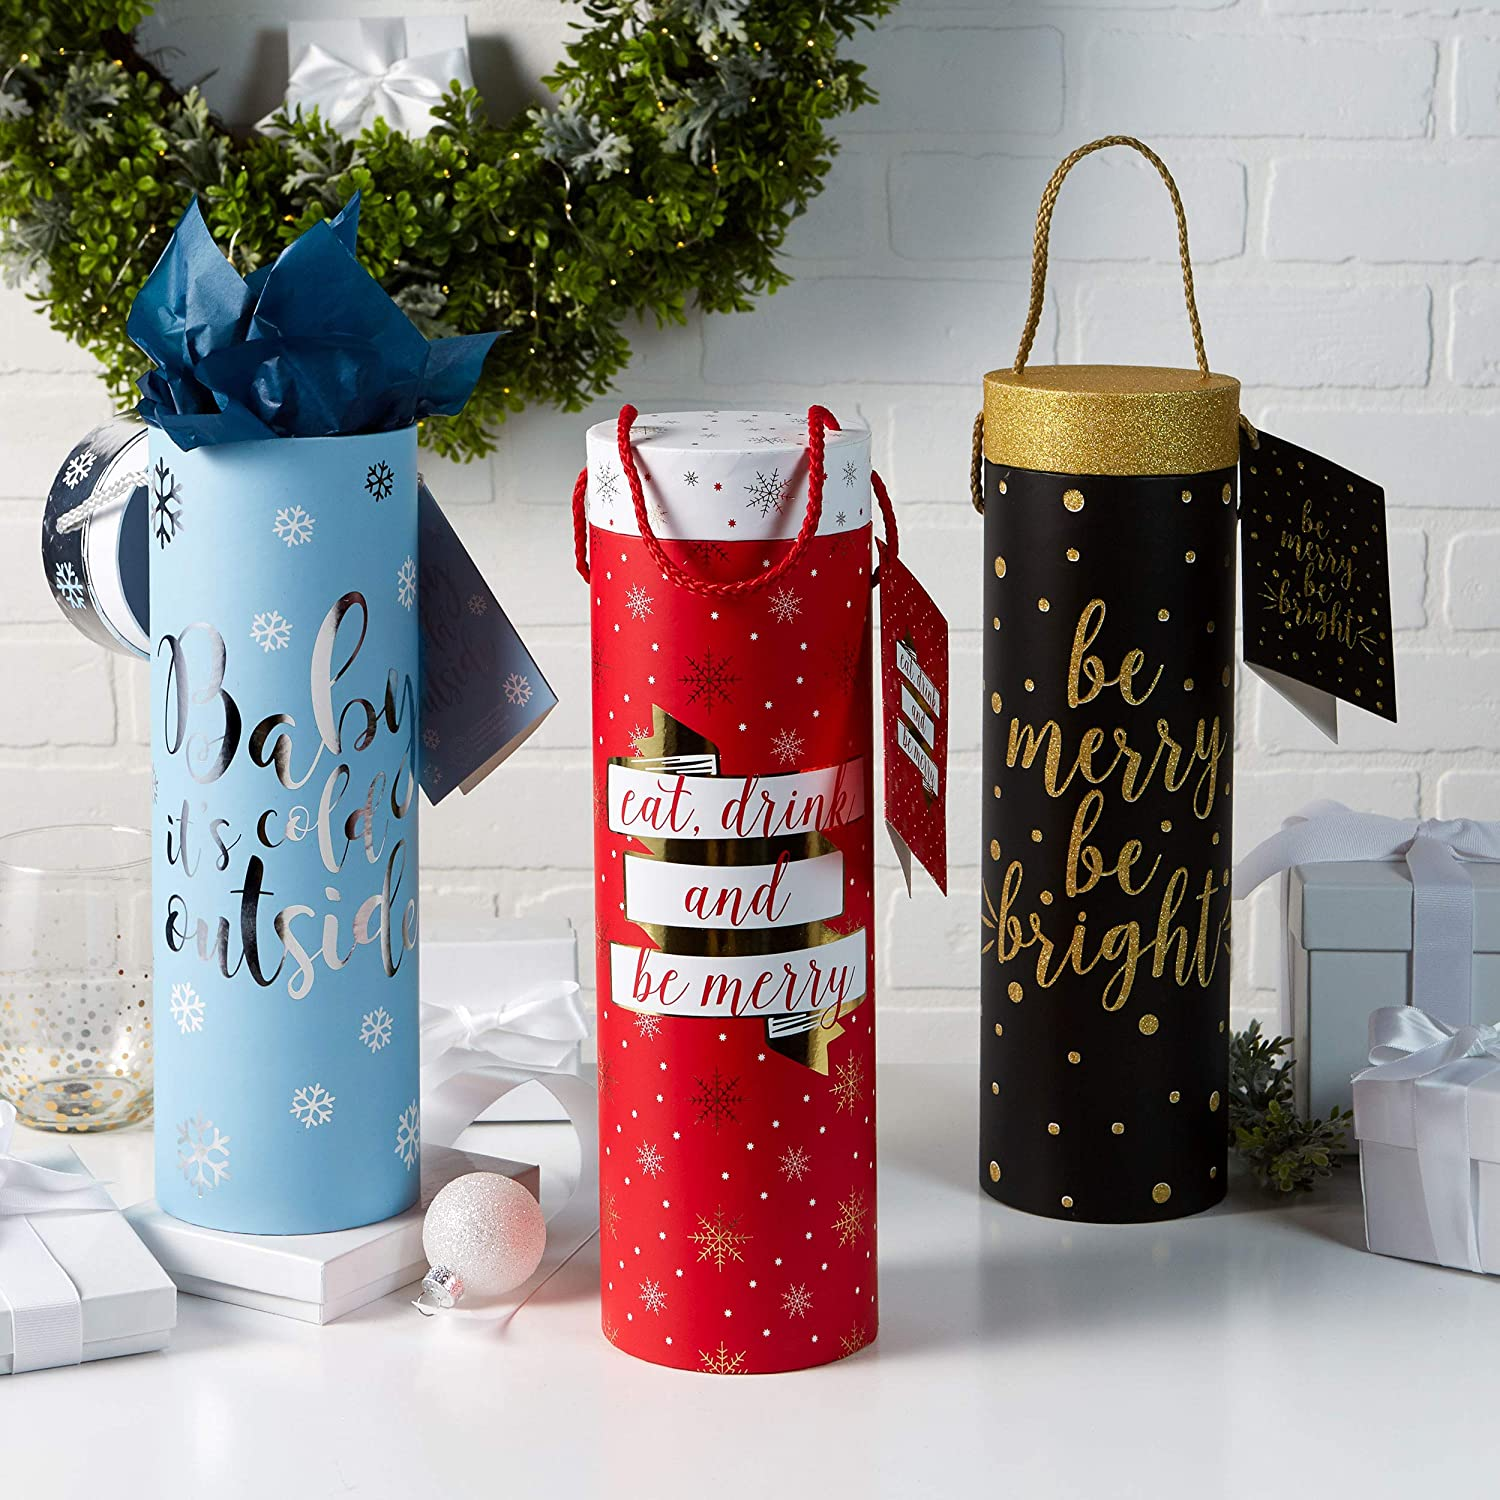 Paper Wine Bottle Gift Bags: Tri-Coastal Design Reusable Christmas Present Bag with Handles and Gift Tag